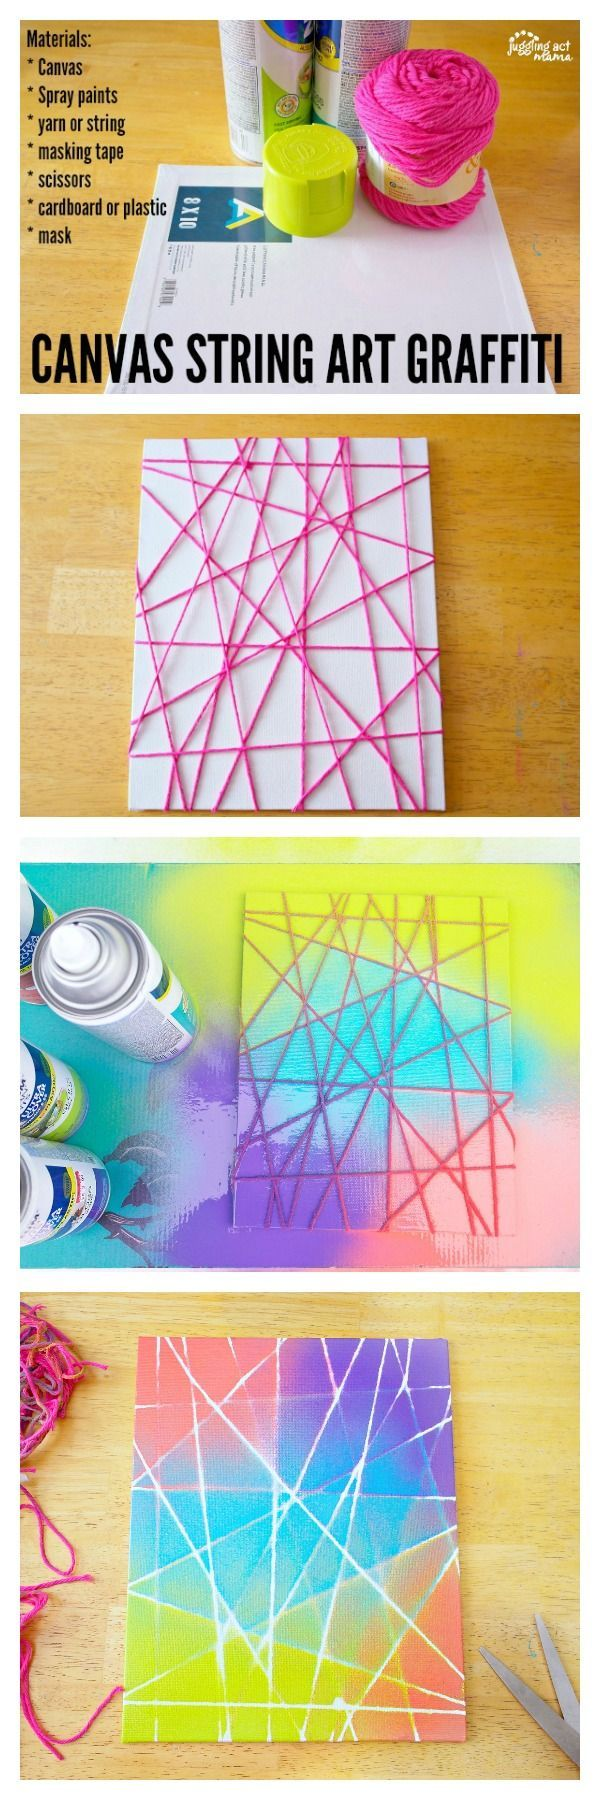 Canvas String Art Graffiti Project for Kids! Just swap out the spray paint for tempera paints with younger children.